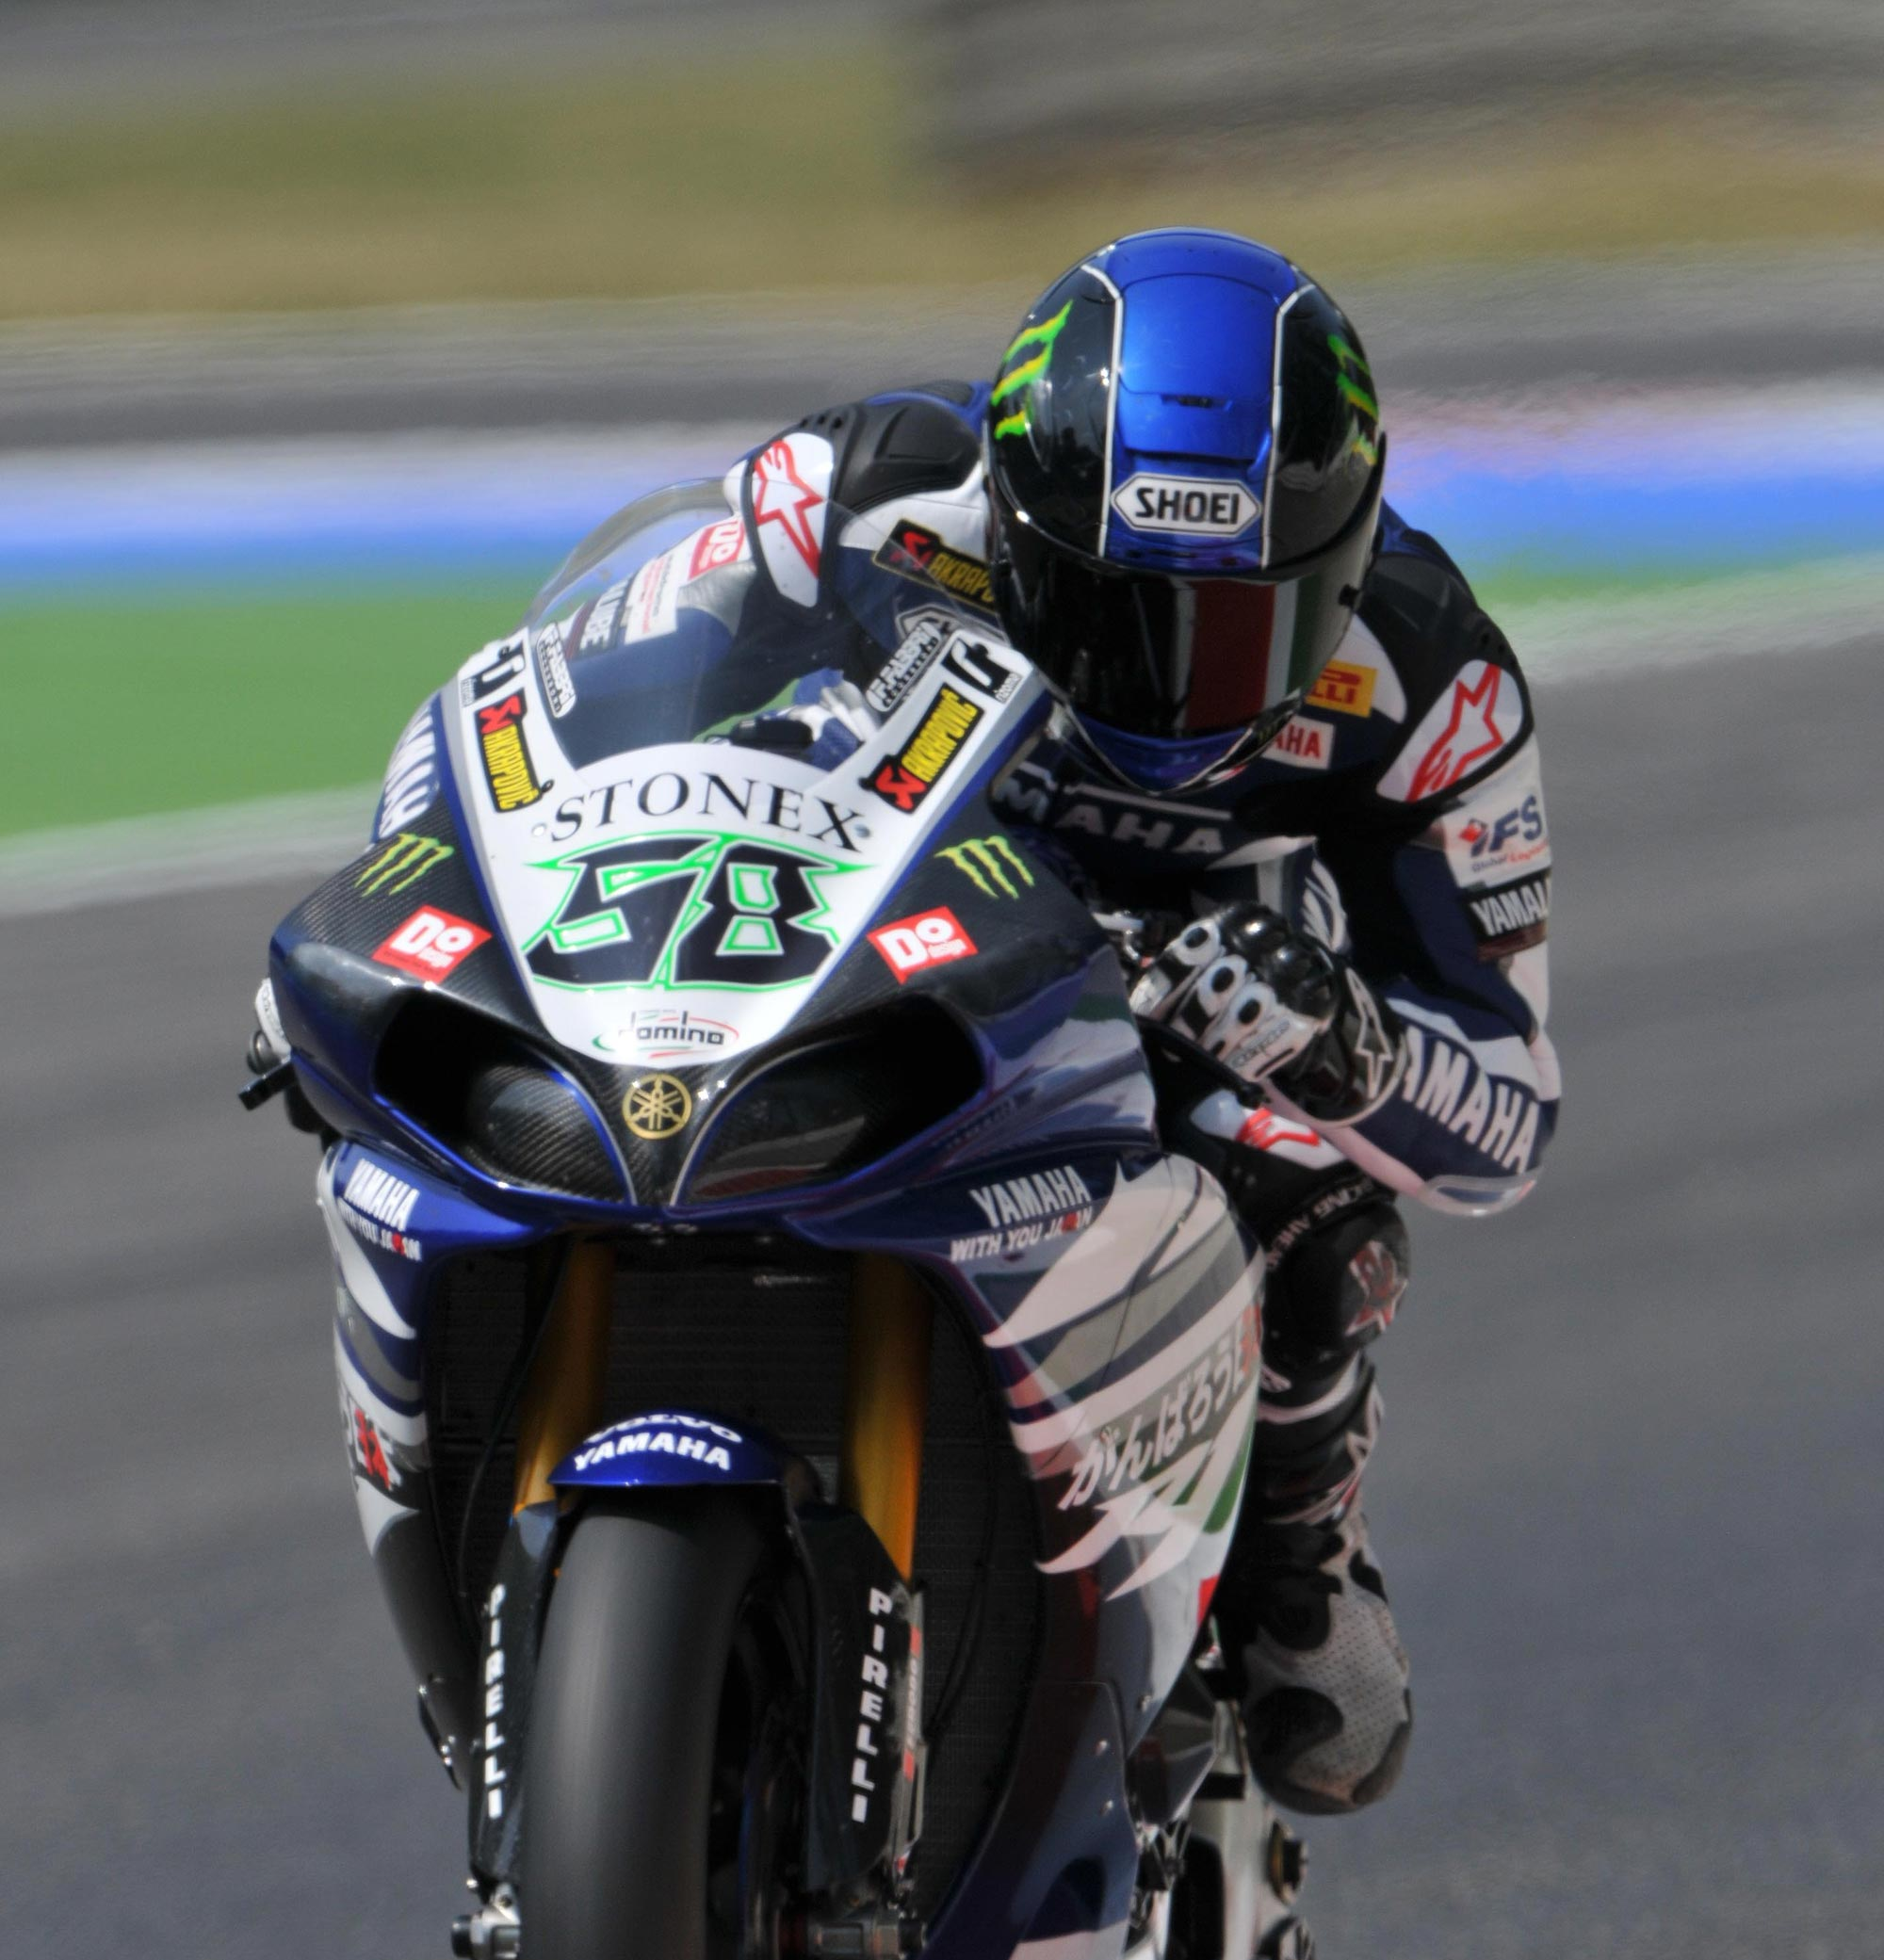 Wsbk duel ends in decisive victory for monza race 1 for Yamaha eugene or